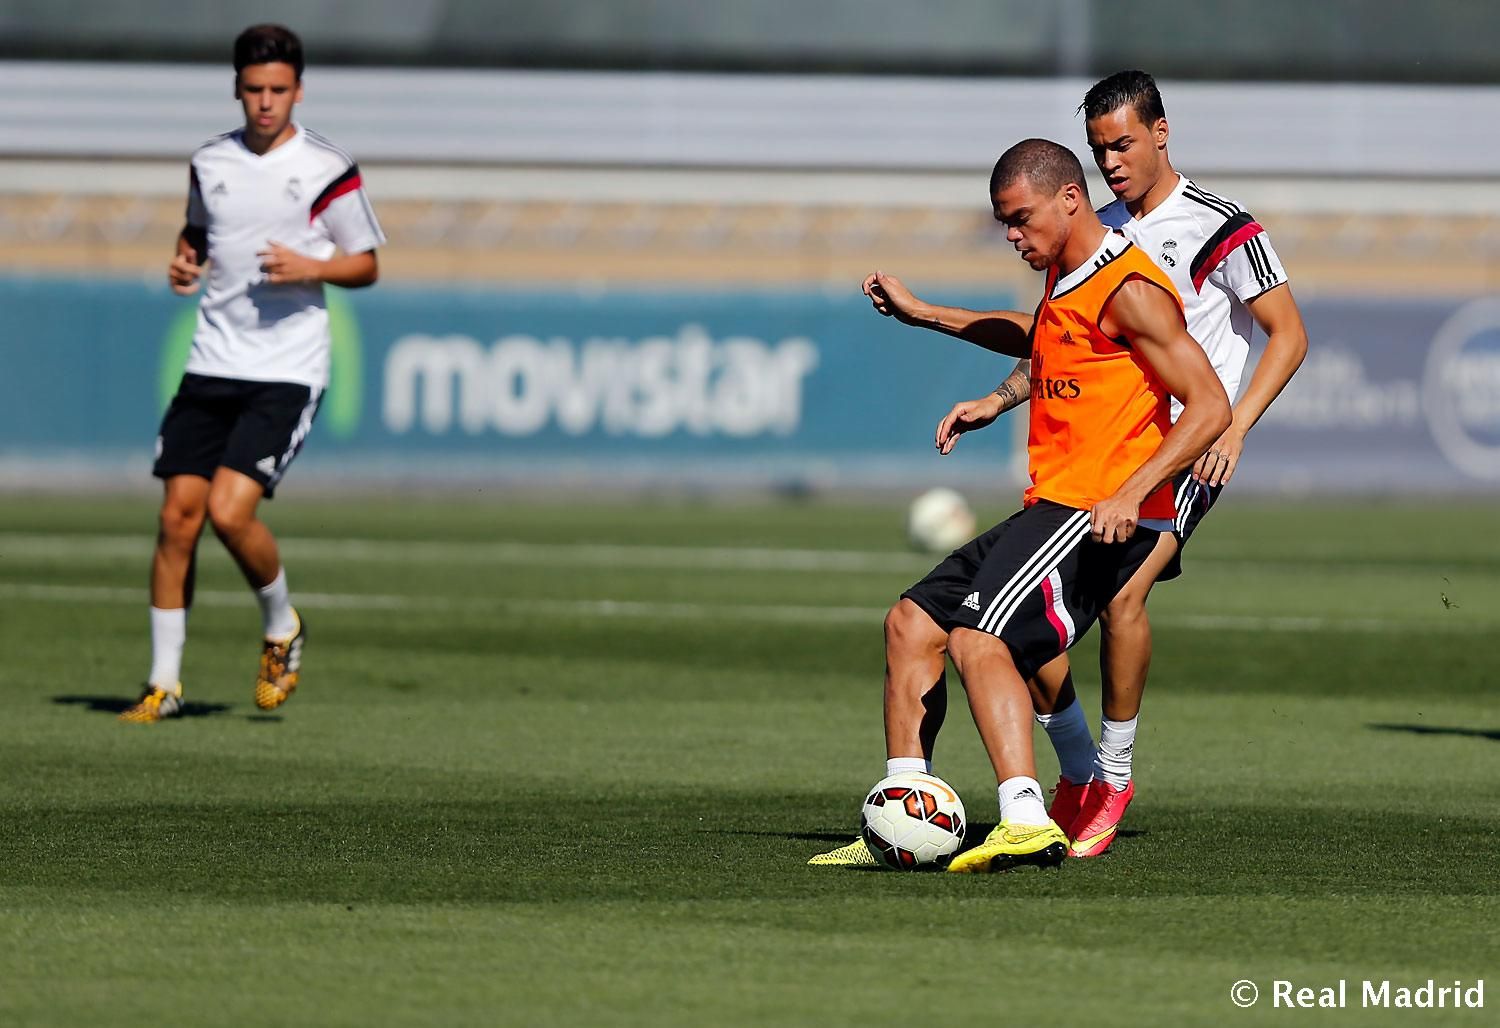 Real Madrid - Entrenamiento del Real Madrid - 29-08-2014